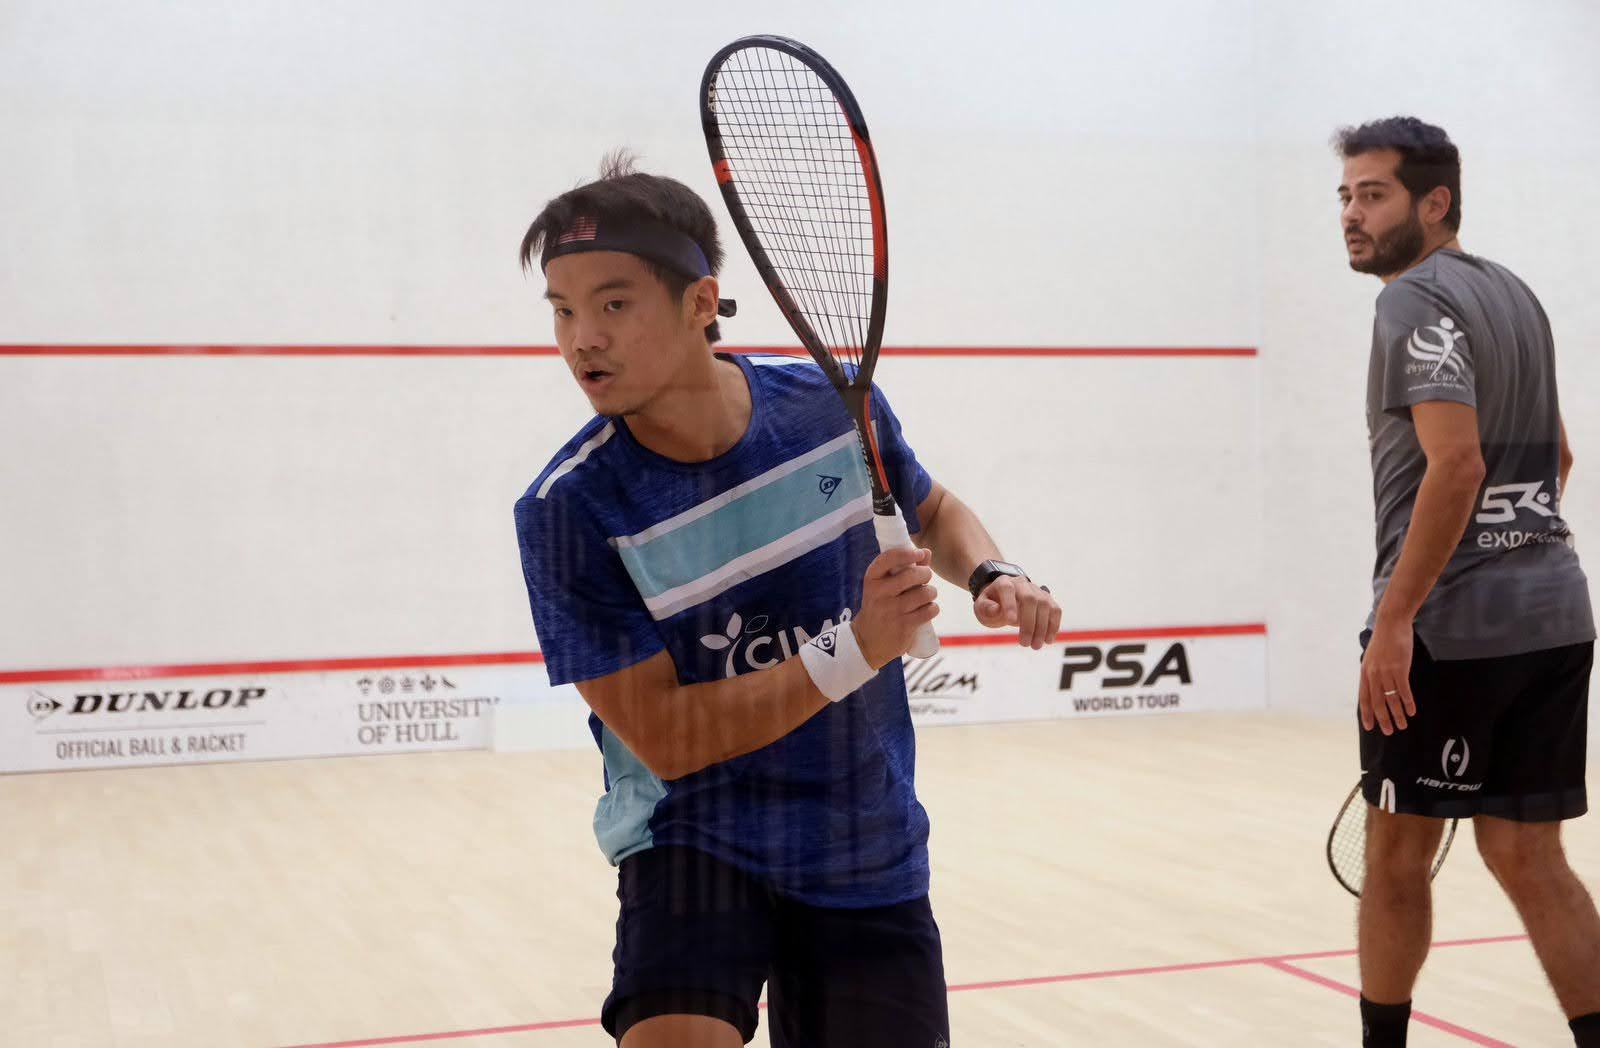 Gawad and Dessouky out of men's draw in British Open squash, while Serme withdraws from women's tournament